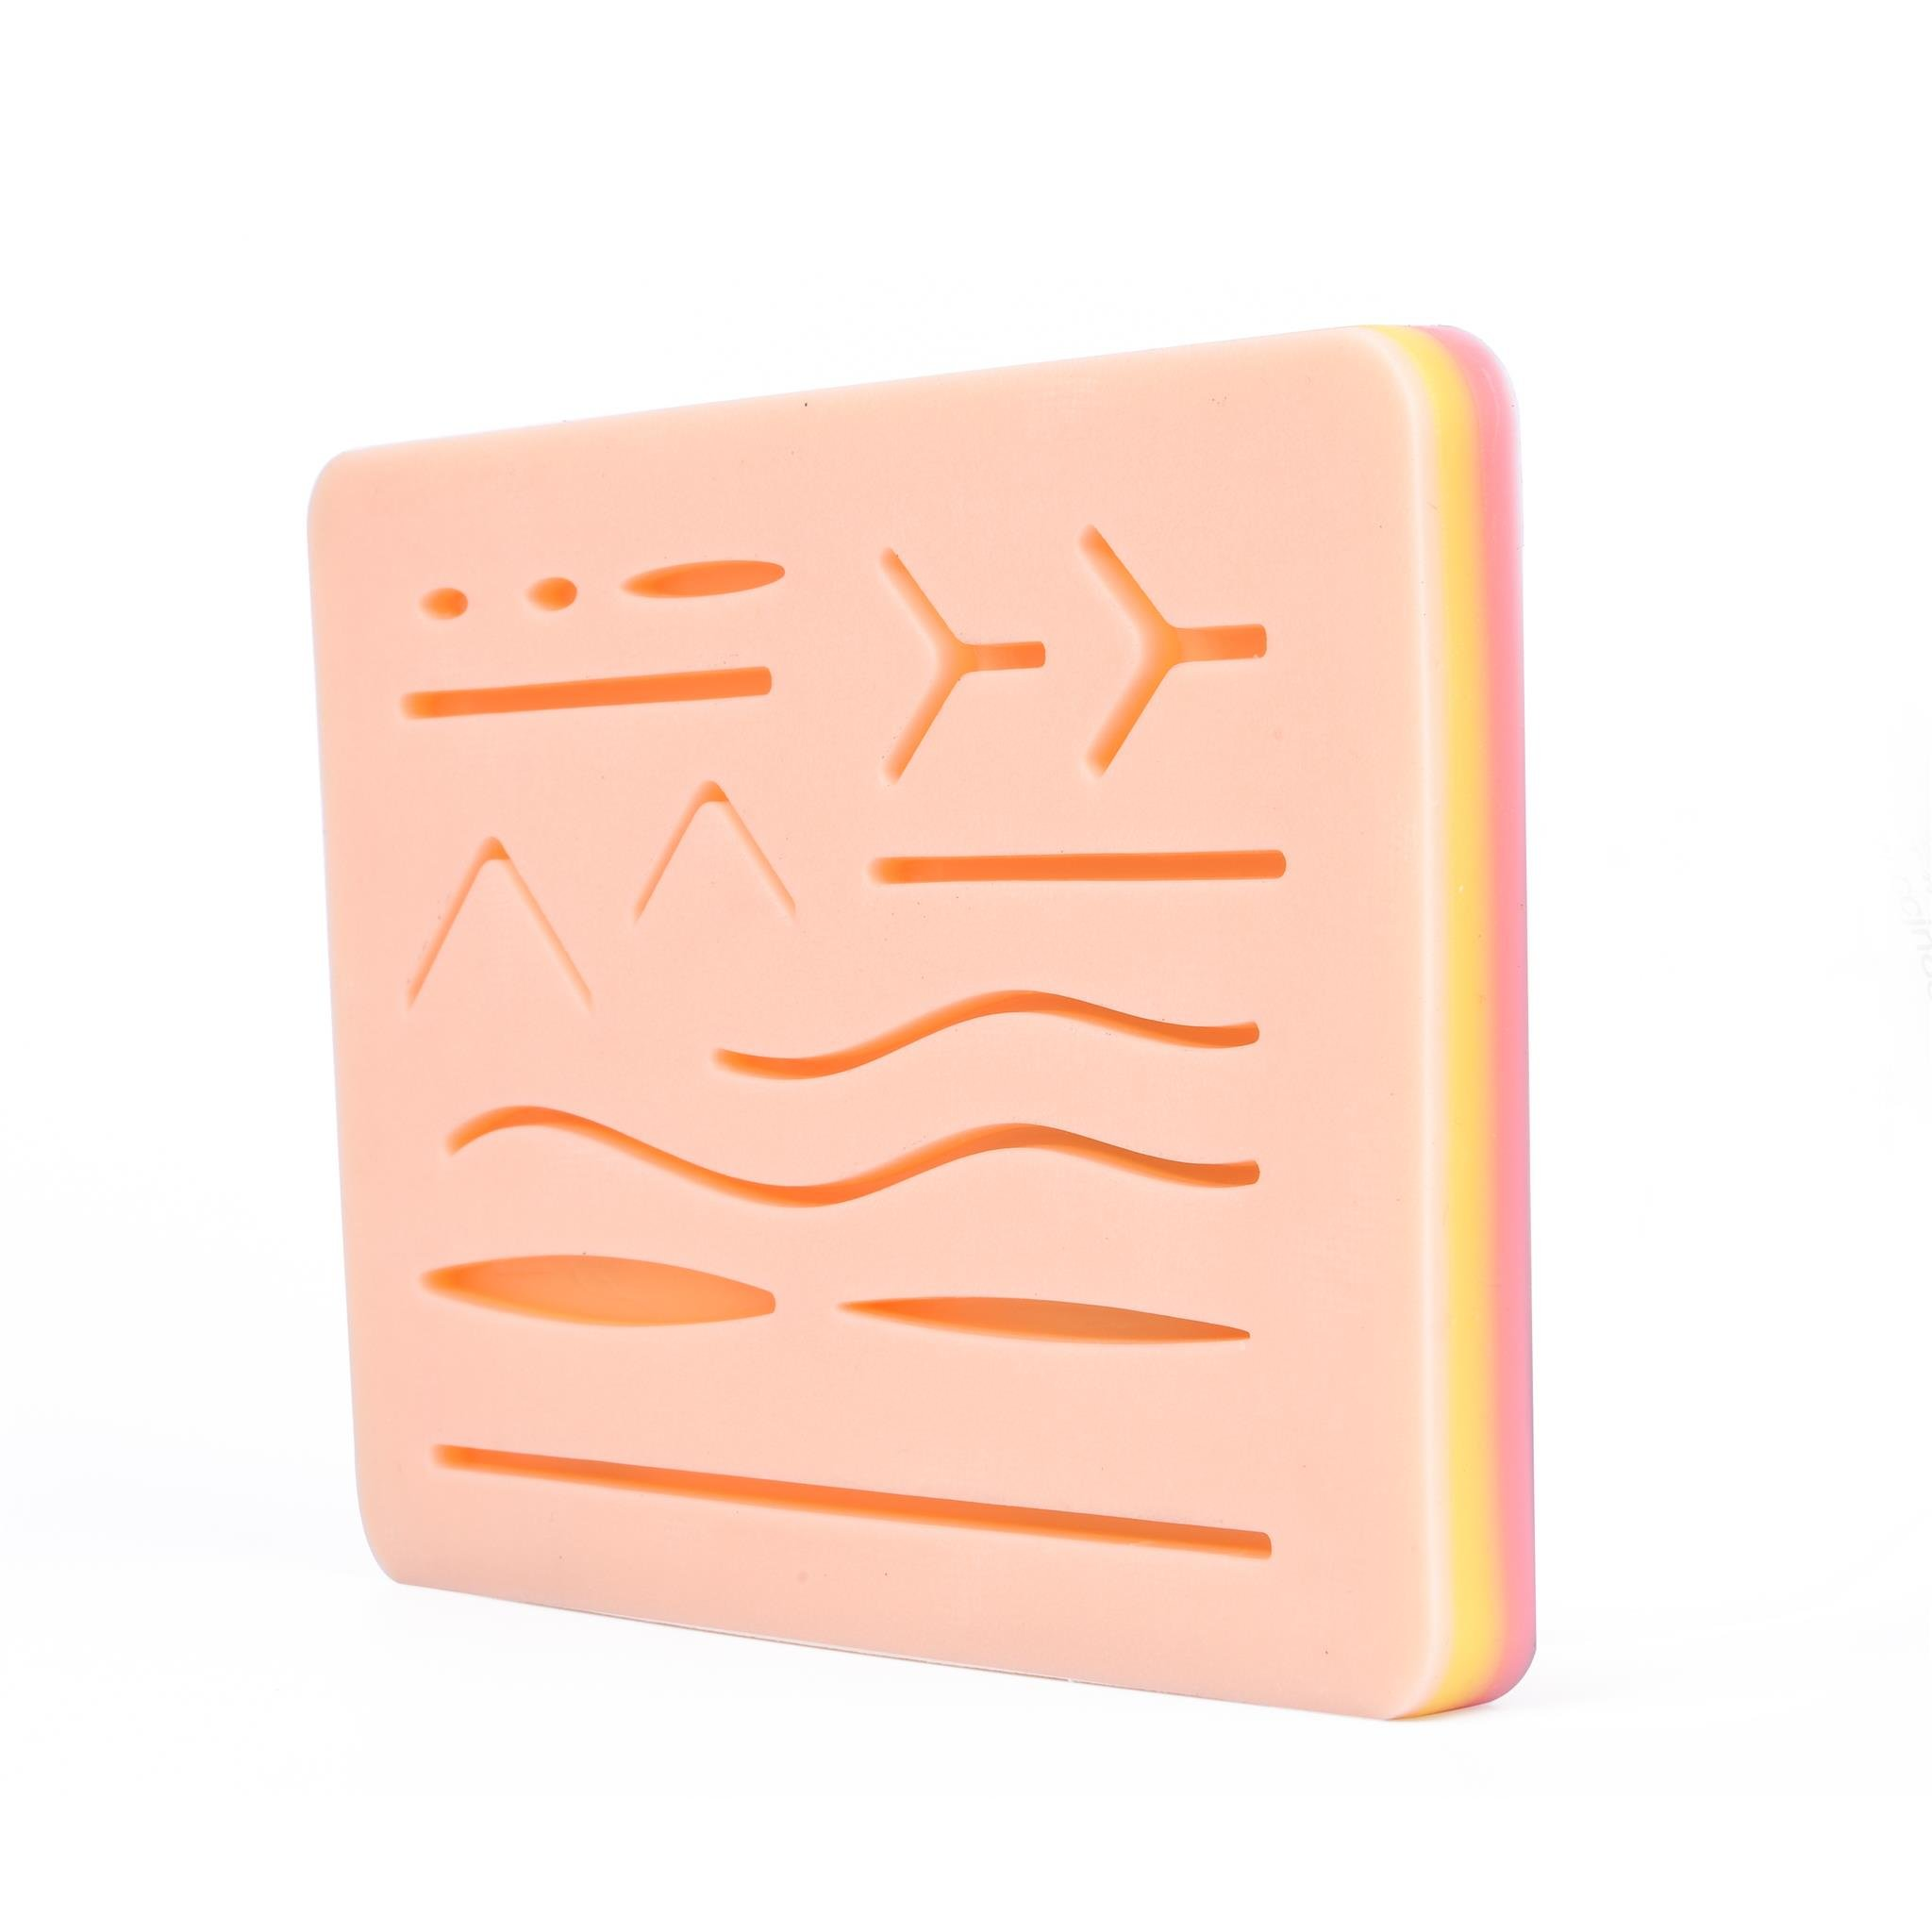 """Suture Training Kit Suture Pad 7"""" x 5"""" for Practice and Training Use